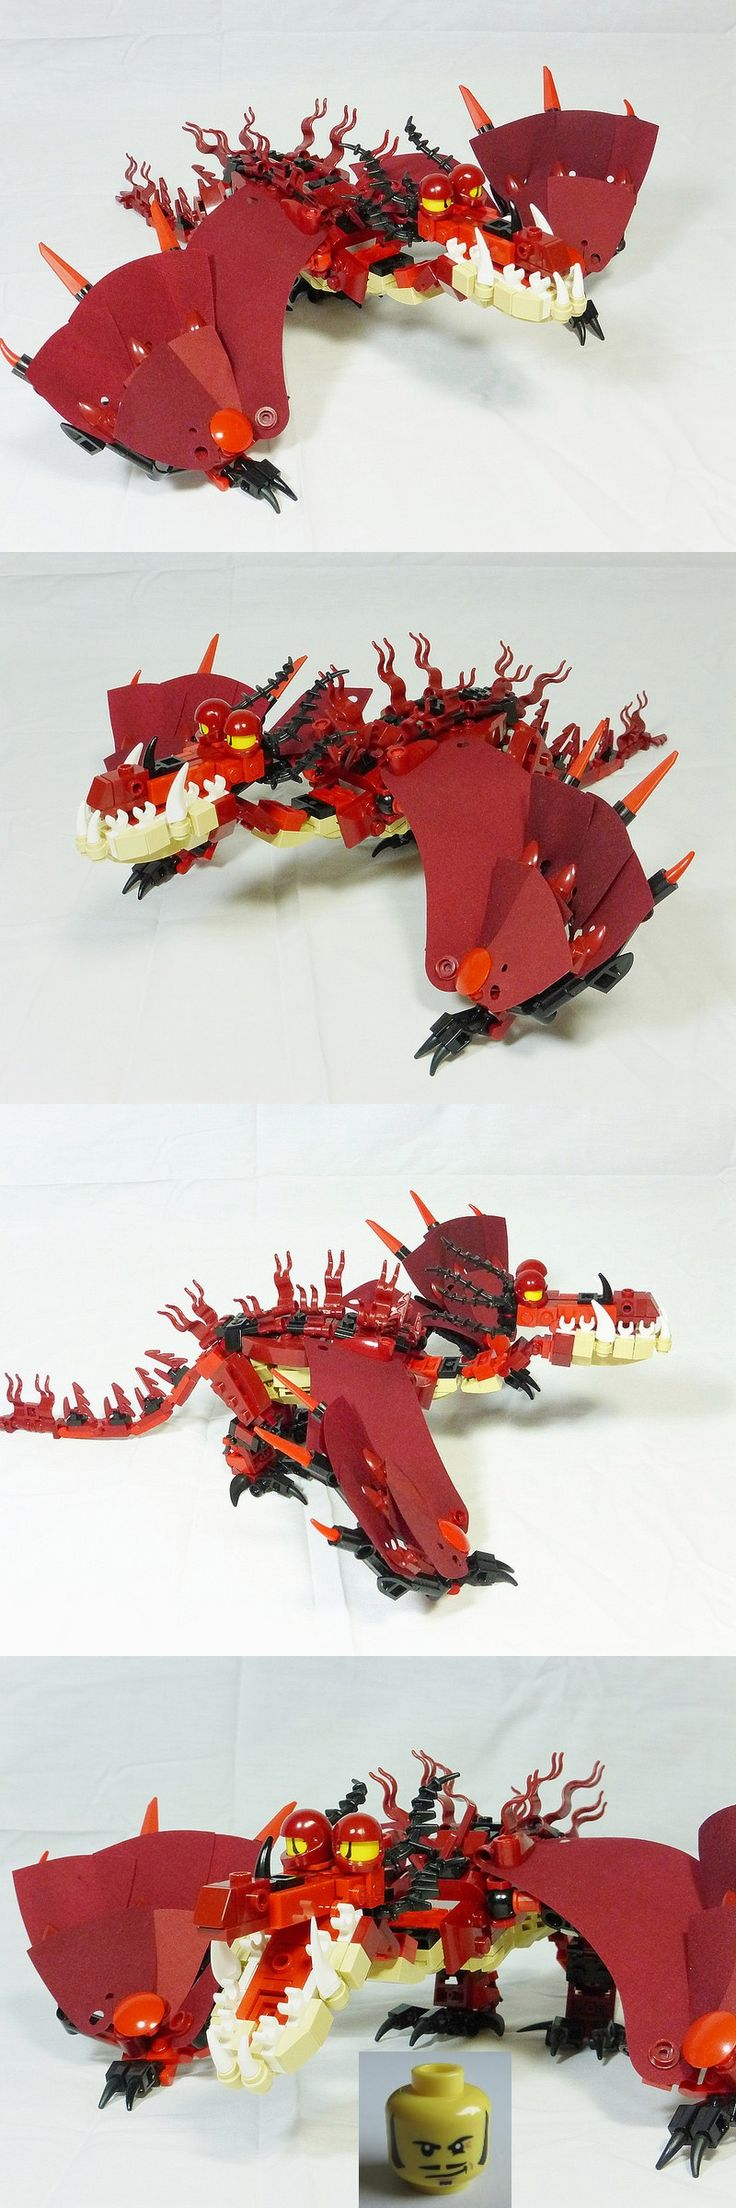 Monstrous Nightmare - check dragon eye (minifigure head) amazing solution!